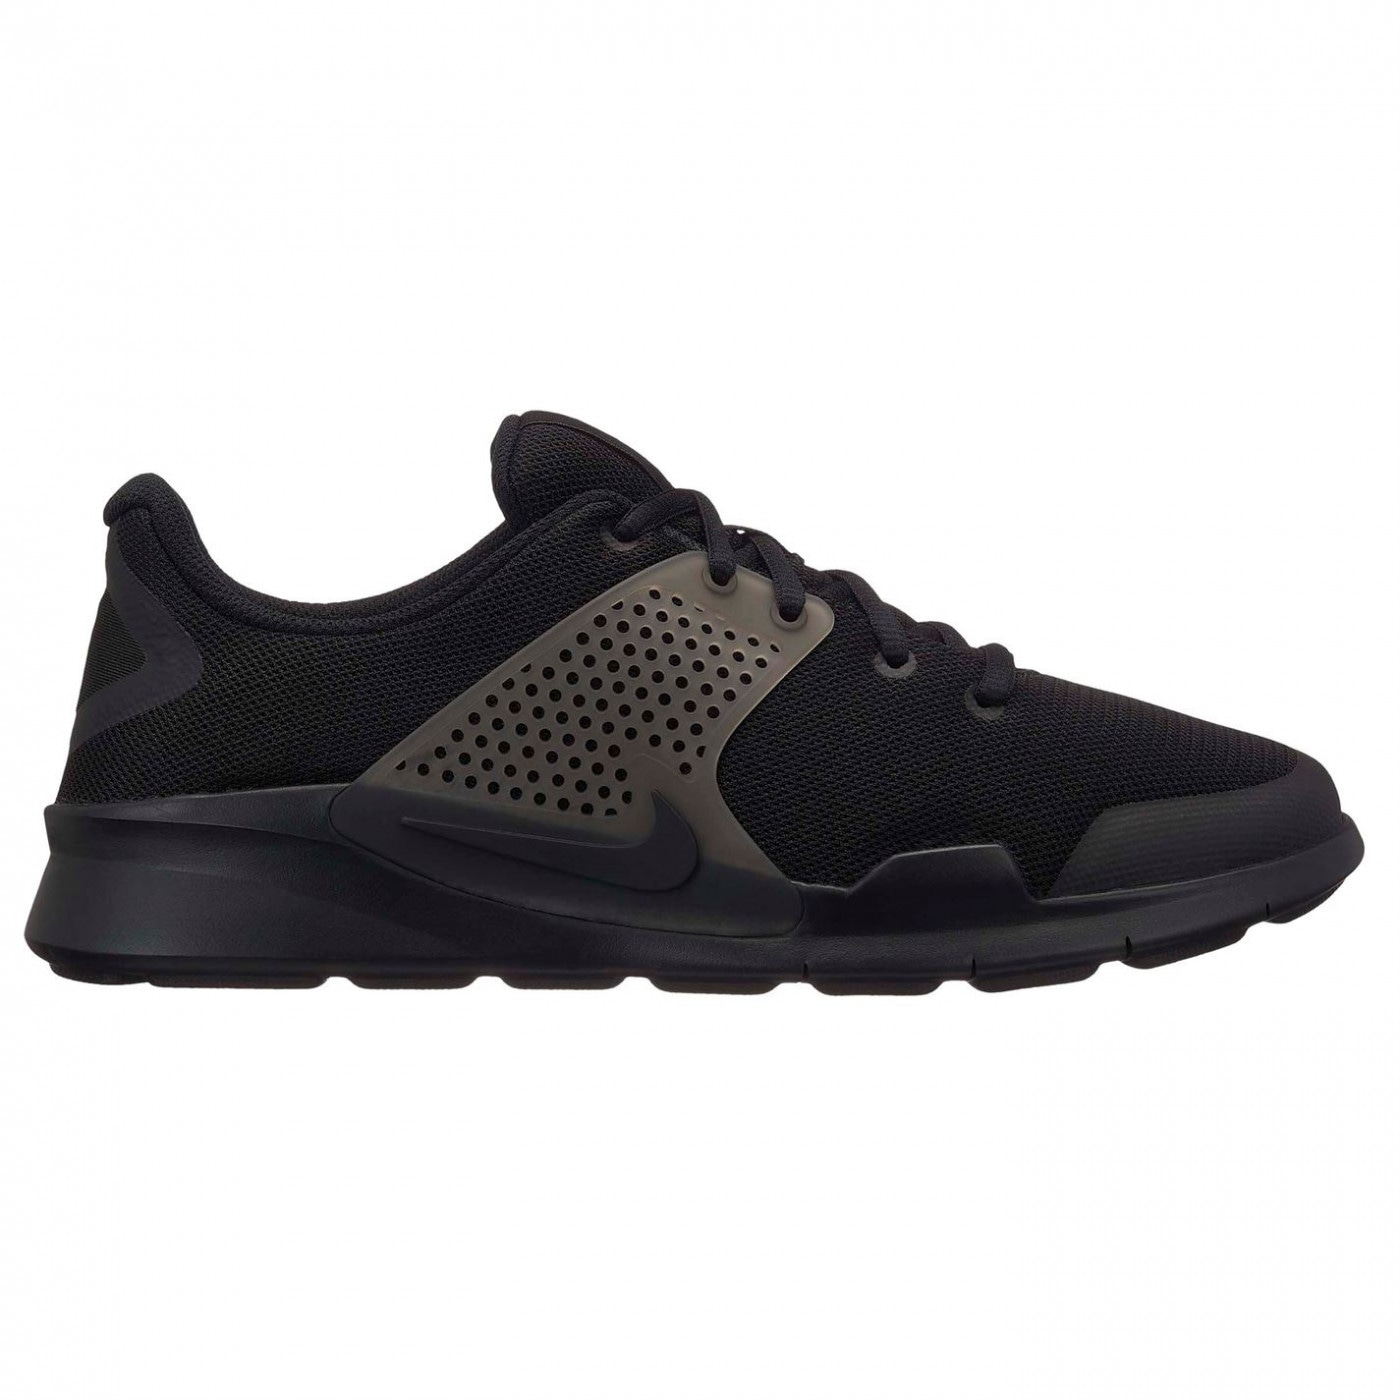 Men's trainers Nike Arrowz